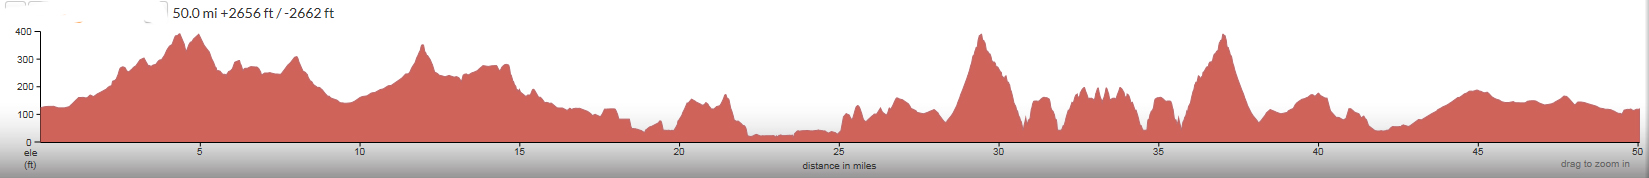 Cuesta-Morro-Montana-de-Oro-2015-elevation-profile